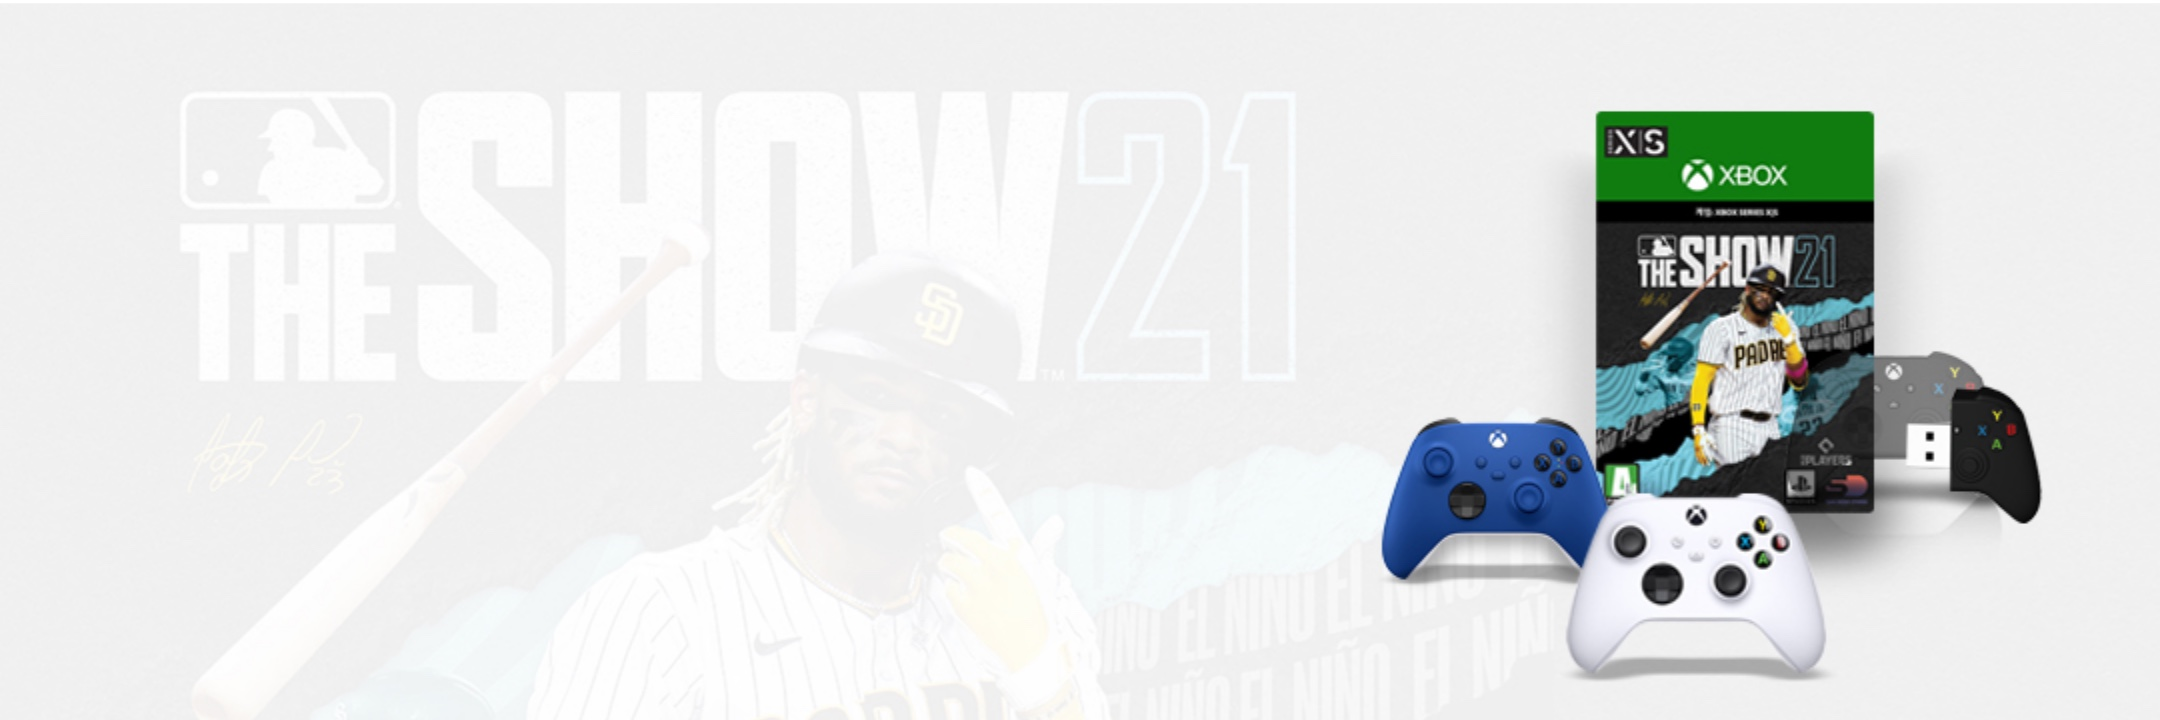 MLB The show21